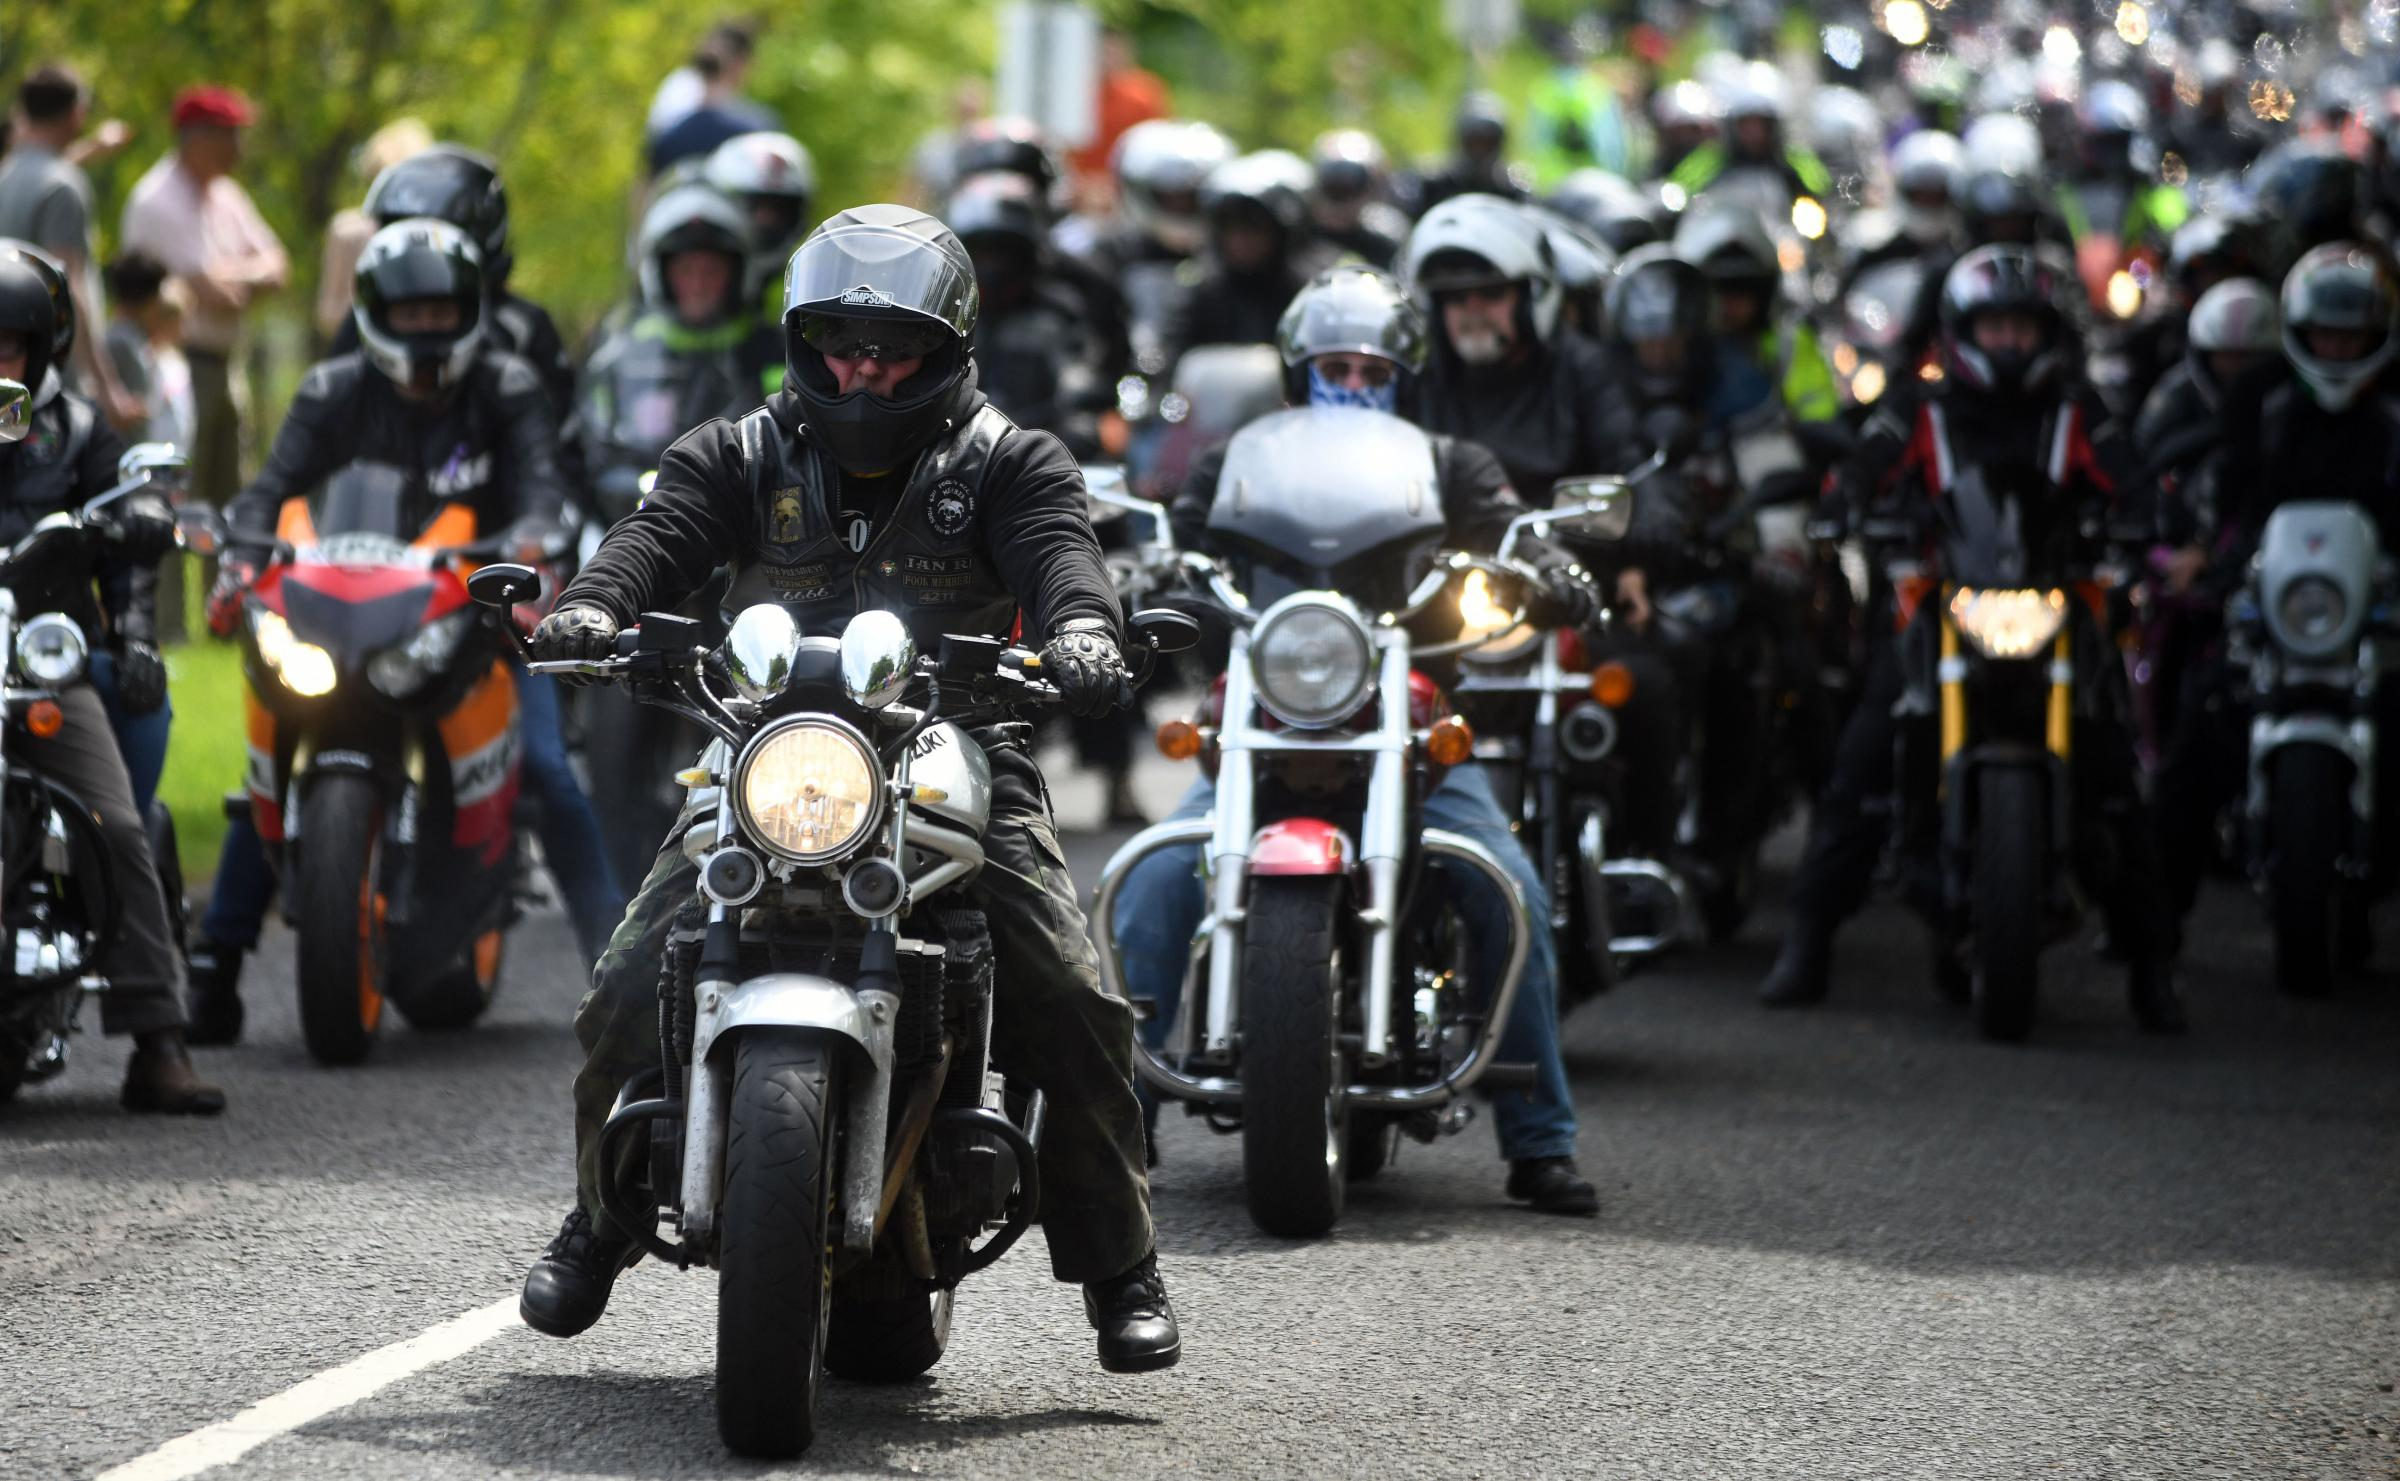 Crowd - bikers will take to the road tomorrow